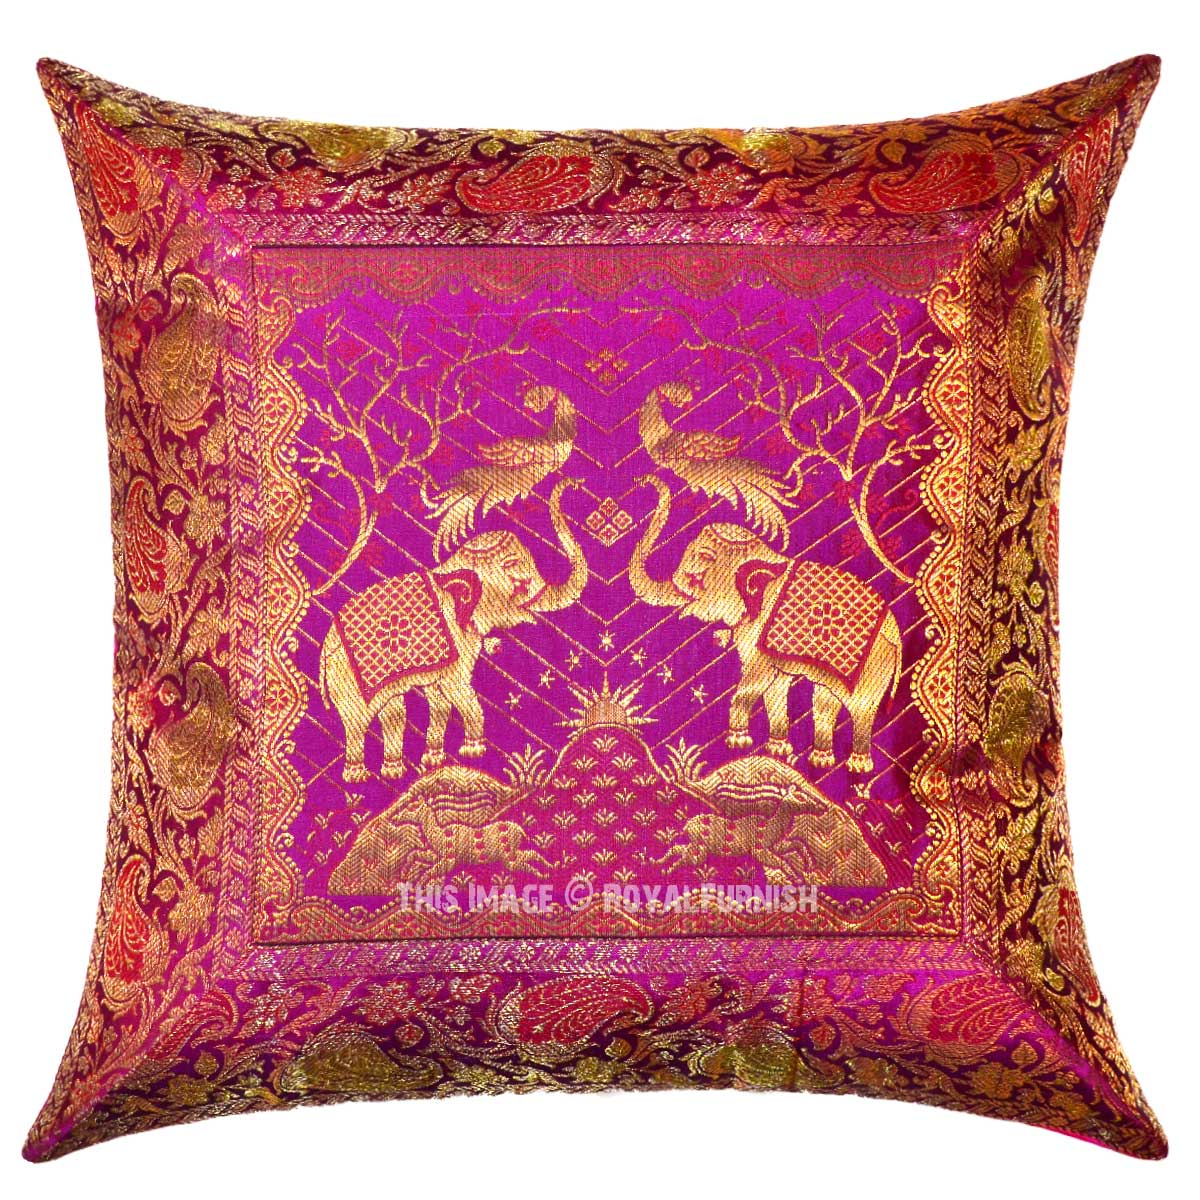 Pink Silk Throw Pillows : Pink Decorative and Accent Elephants and Birds Featuring Silk Pillow Case 16X16 - RoyalFurnish.com